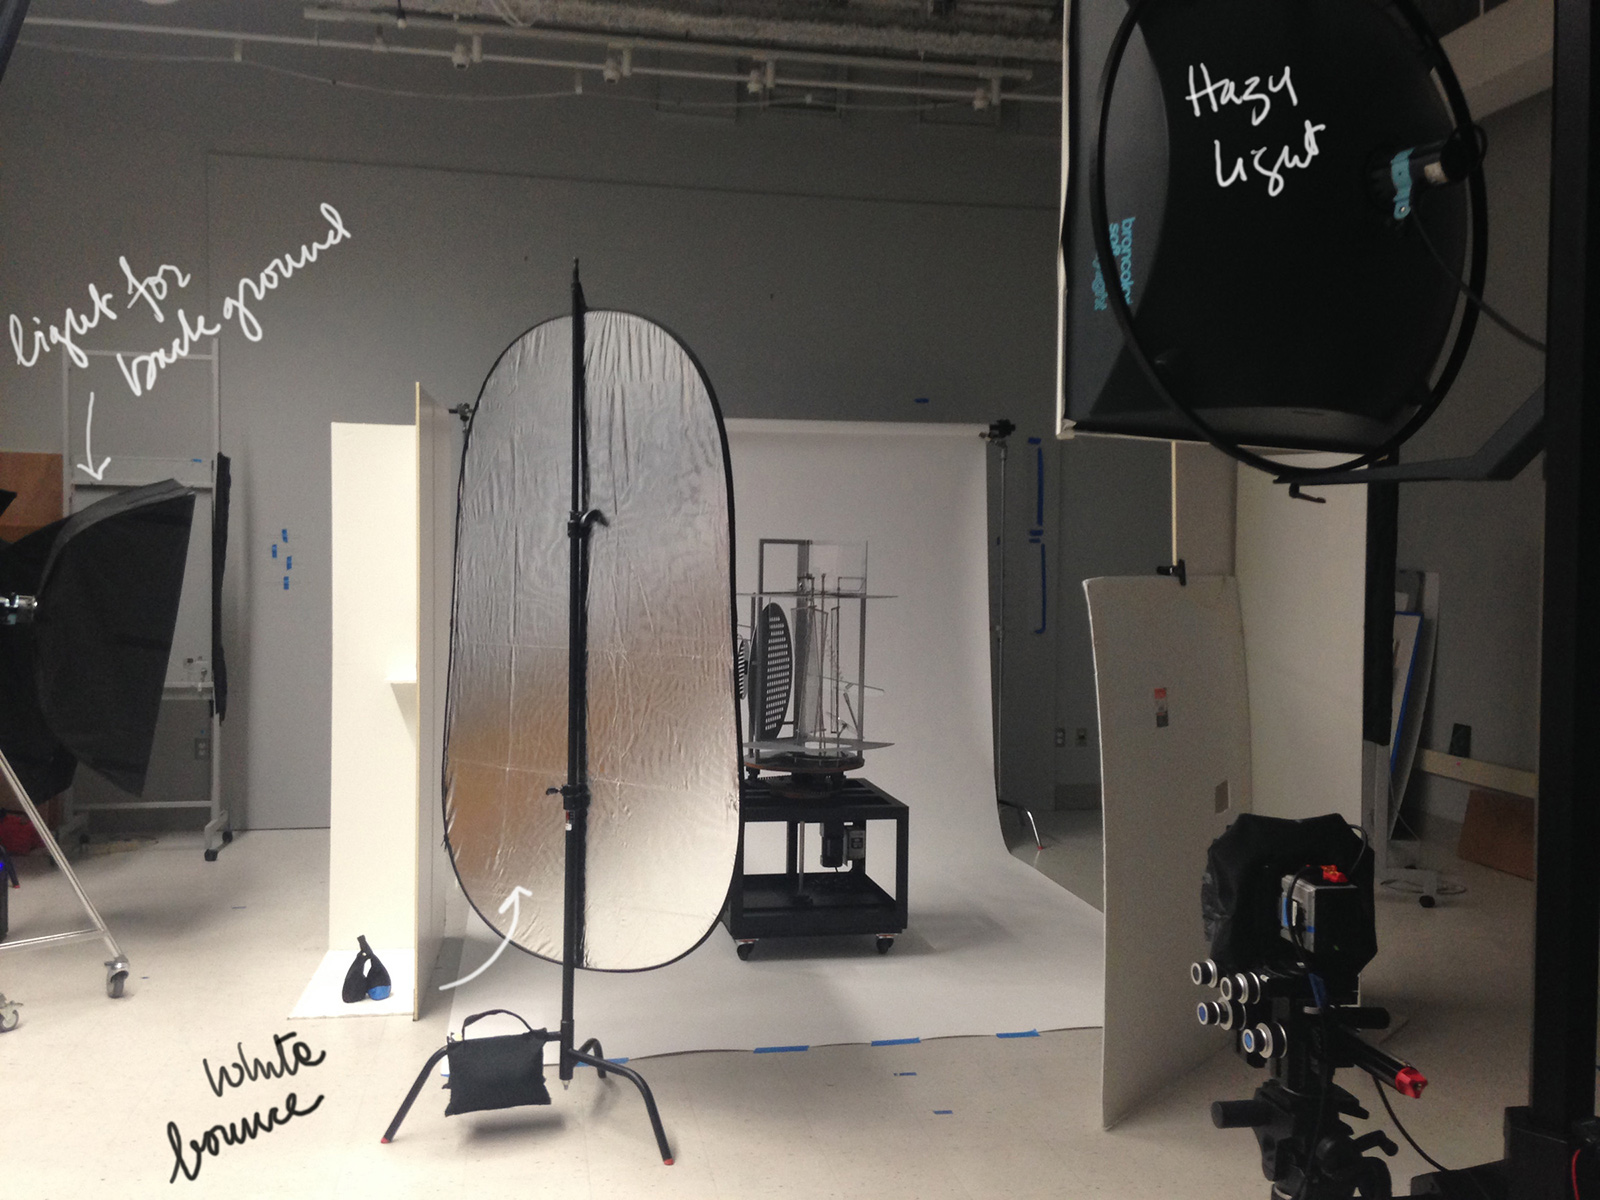 The studio is ready to photograph a  sculpture by László Moholy-Nagy, which will be featured in the upcoming Bauhaus and Harvard exhibition.